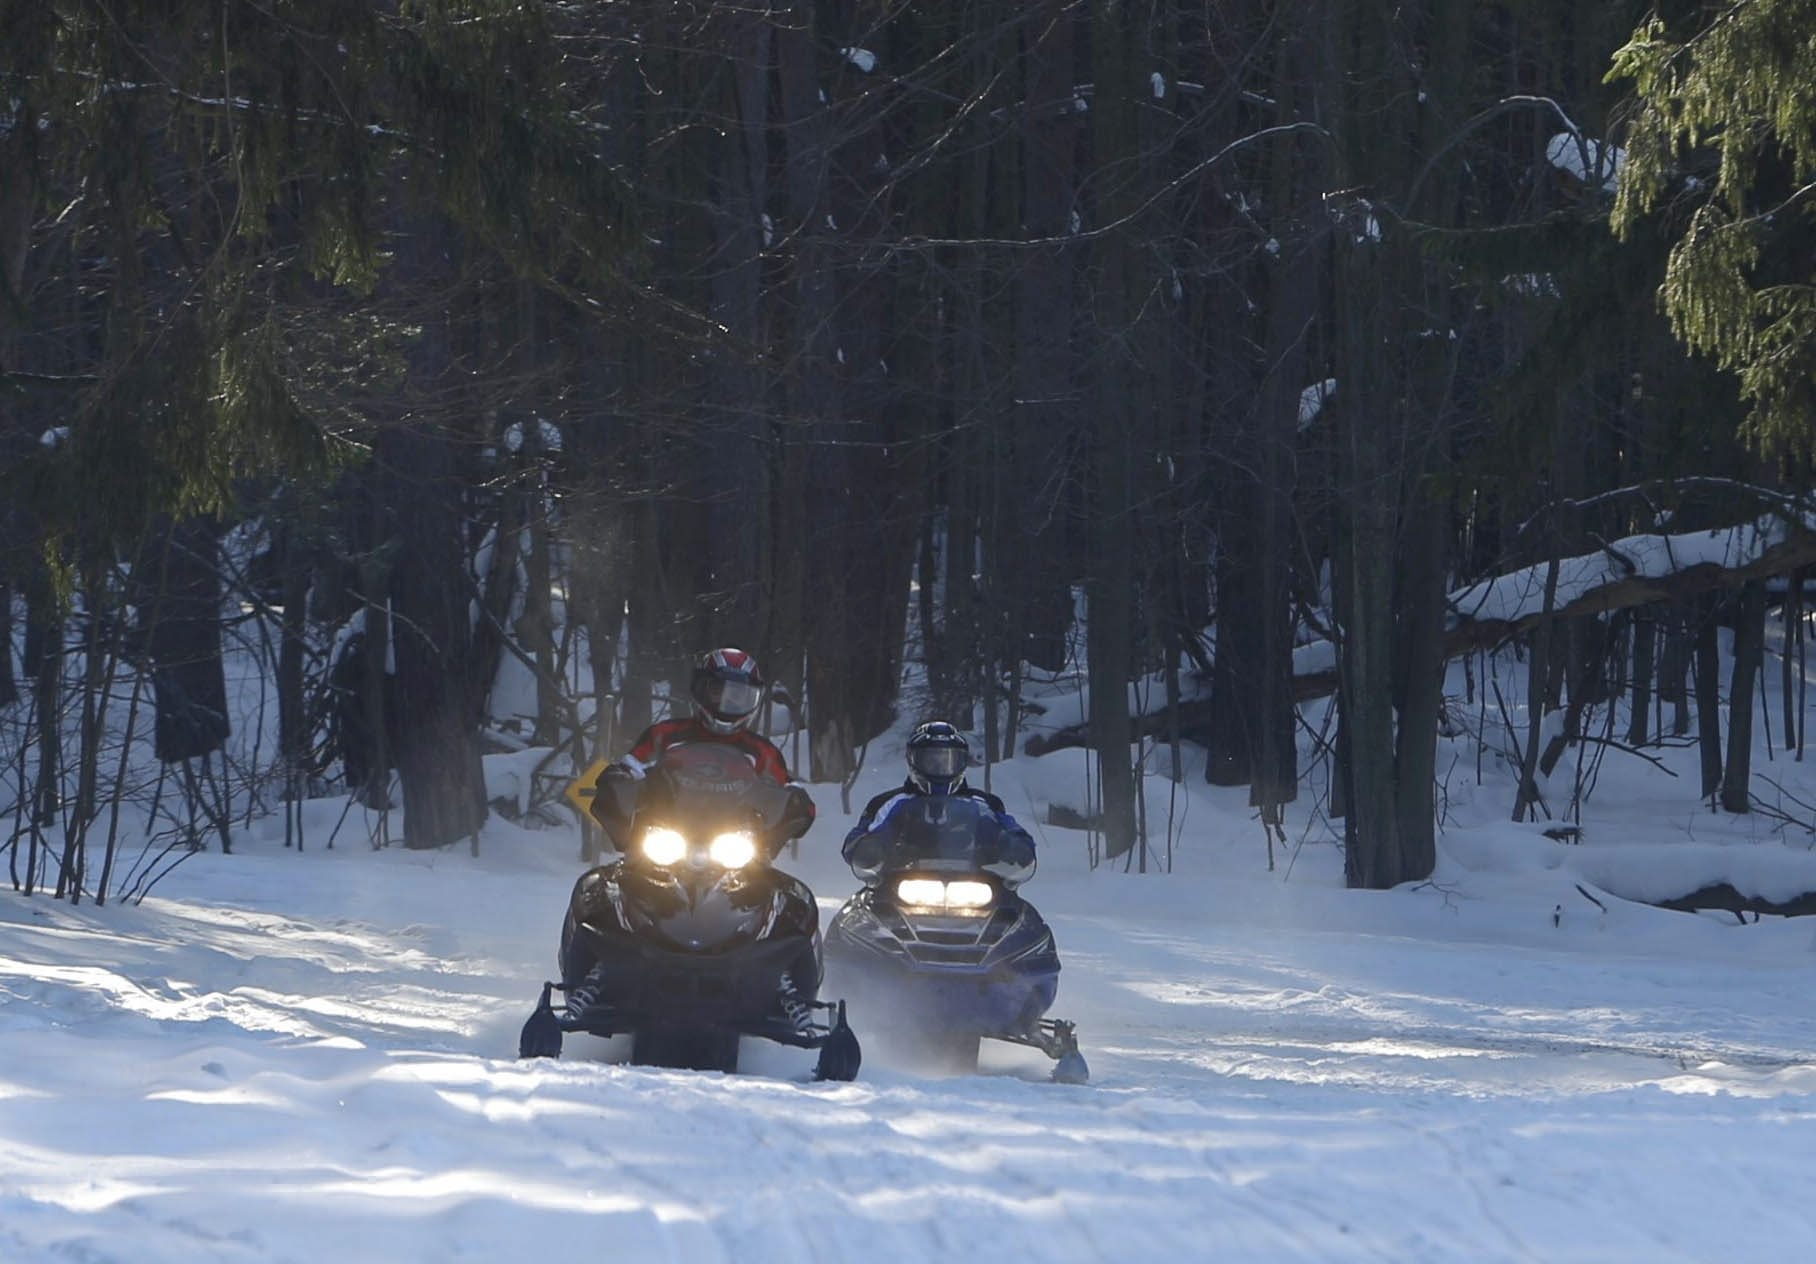 Snowmobilers ride through Emery Park in South Wales on Jan. 25. The sport is thriving 50 years after the first sled hit the trails here.